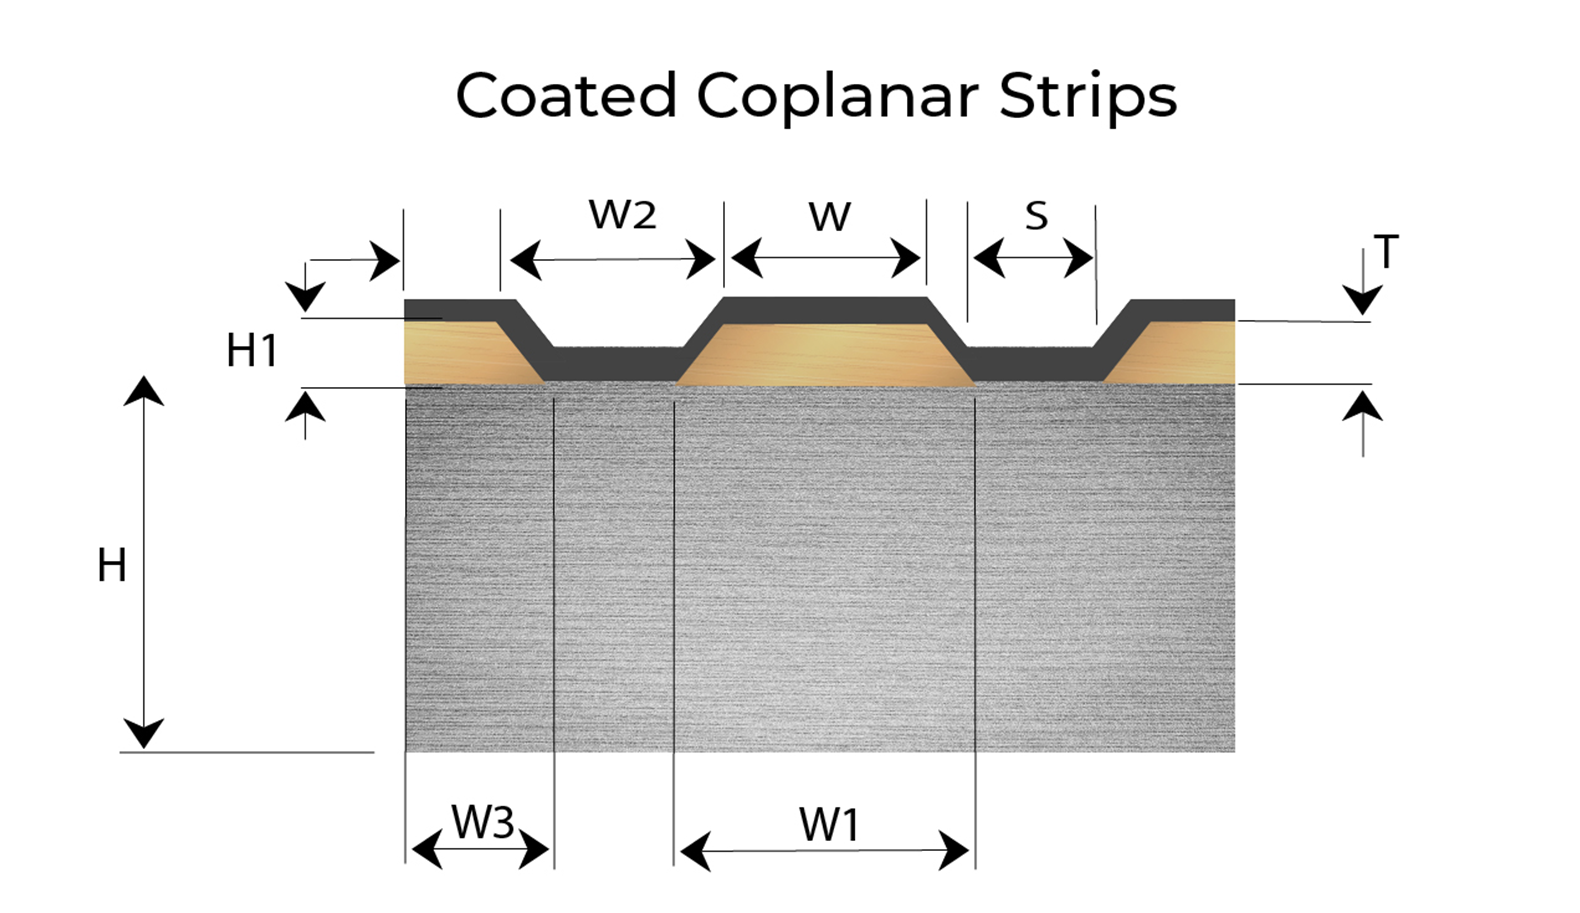 Coated Coplanar Strips